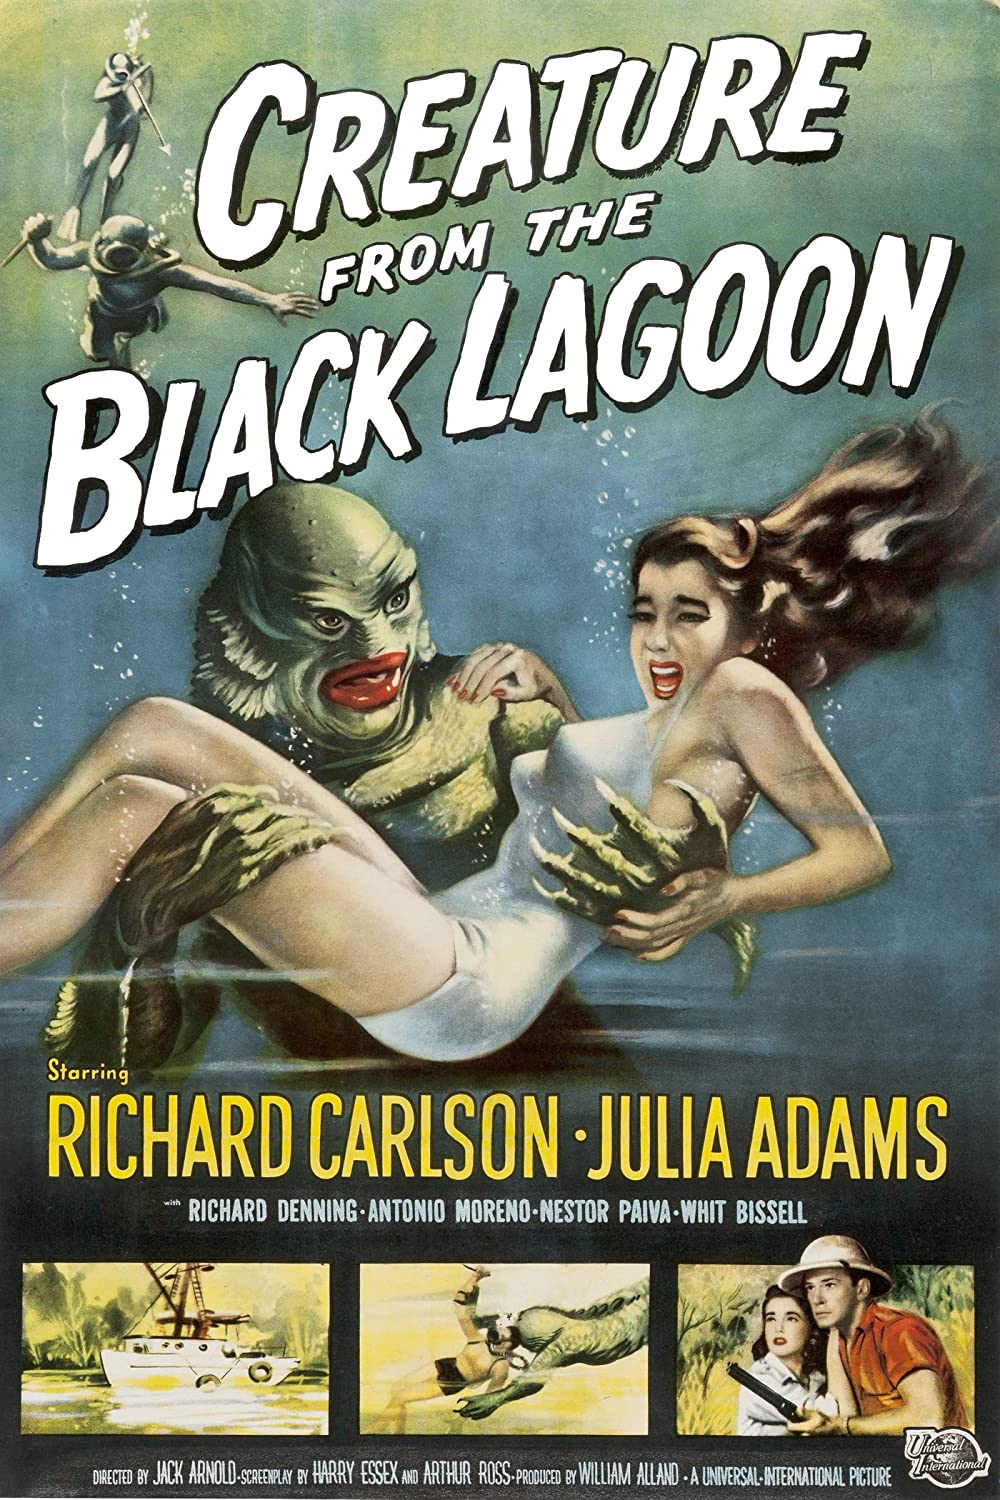 American Gift Services Creature From the Black Lagoon Vintage Movie Poster 18x24 inches